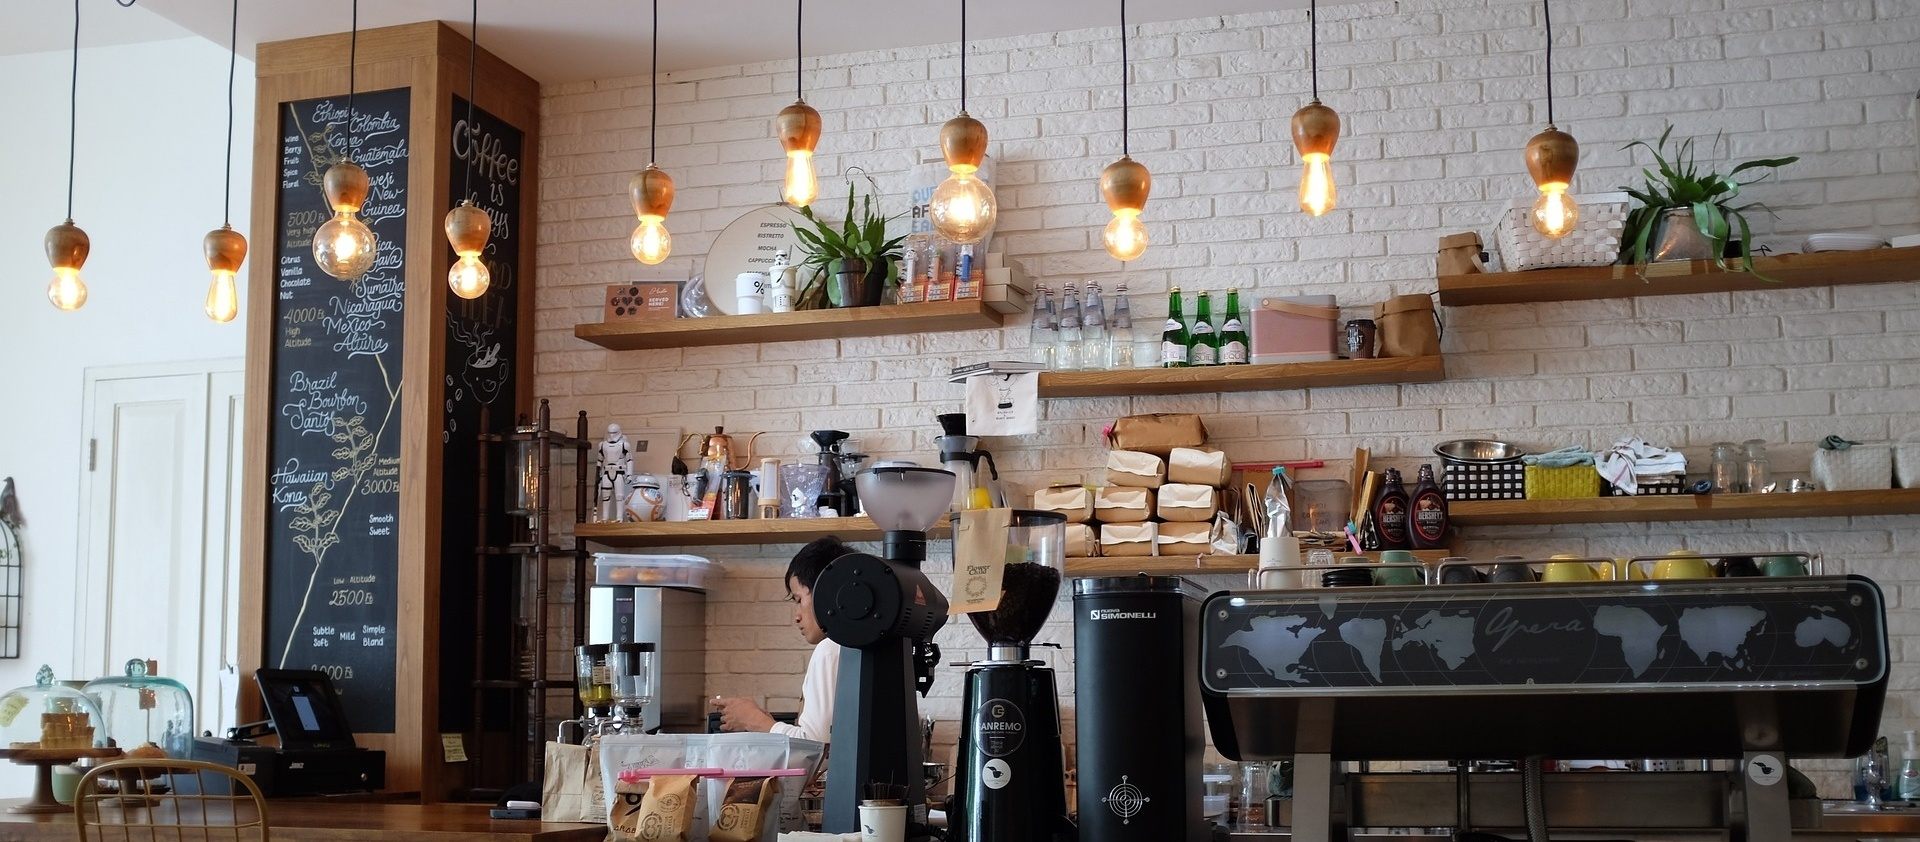 3 Clever Coffee Shop Interior Design Examples and Ideas